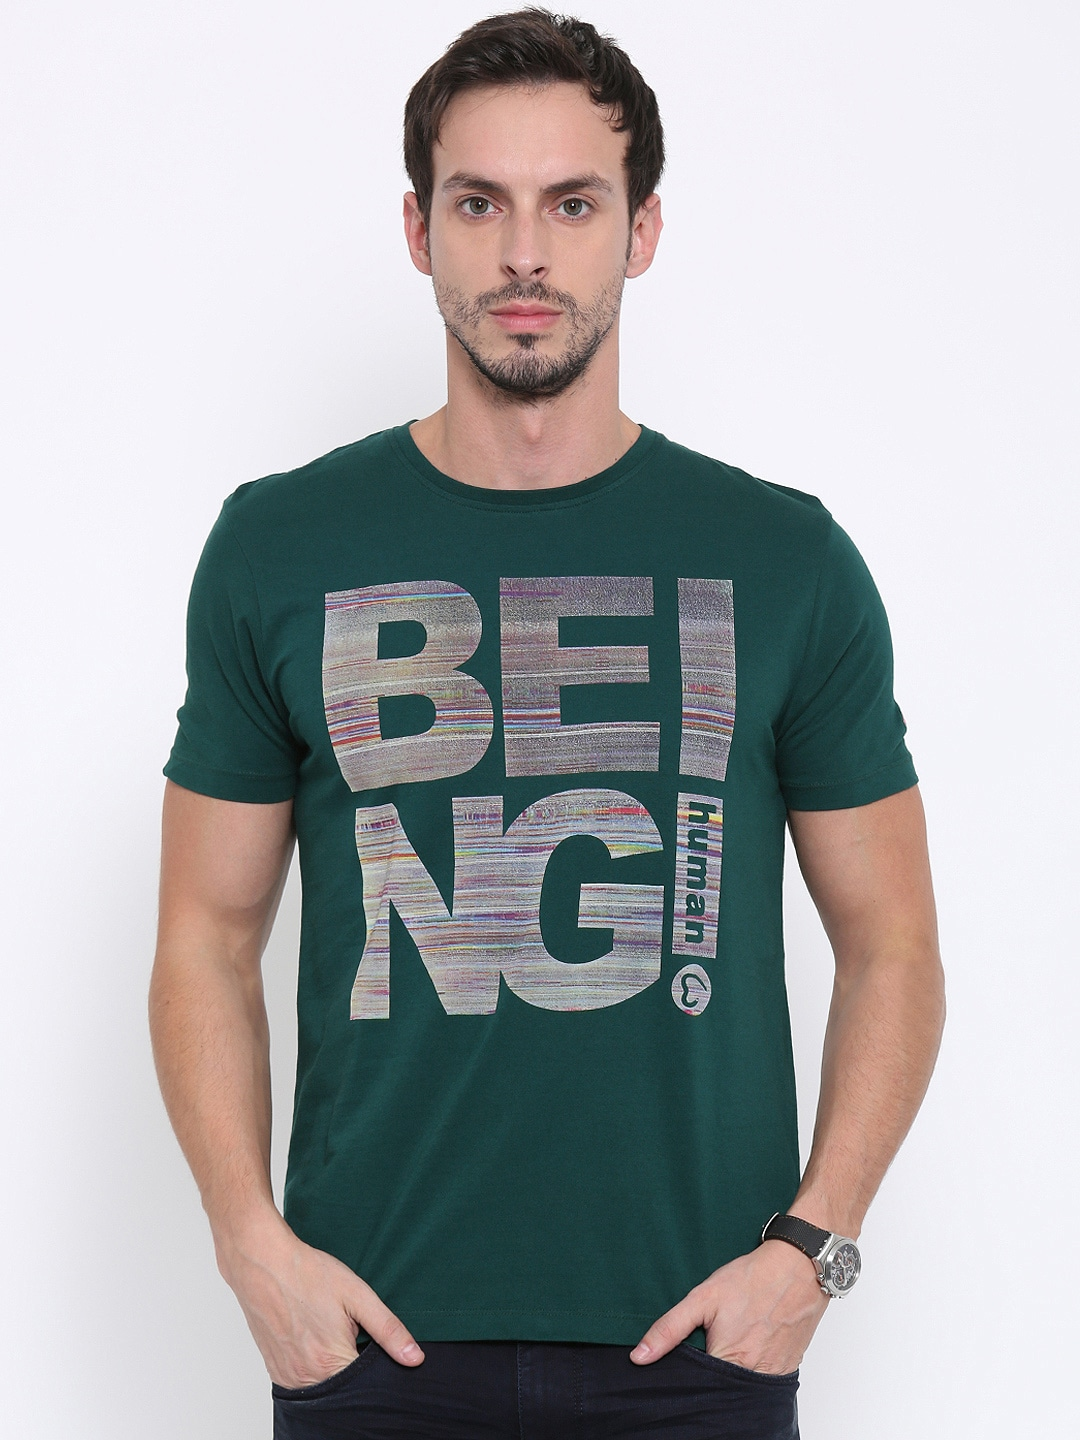 Design your own t shirt india cash on delivery - Design Your Own T Shirt India Cash On Delivery 67